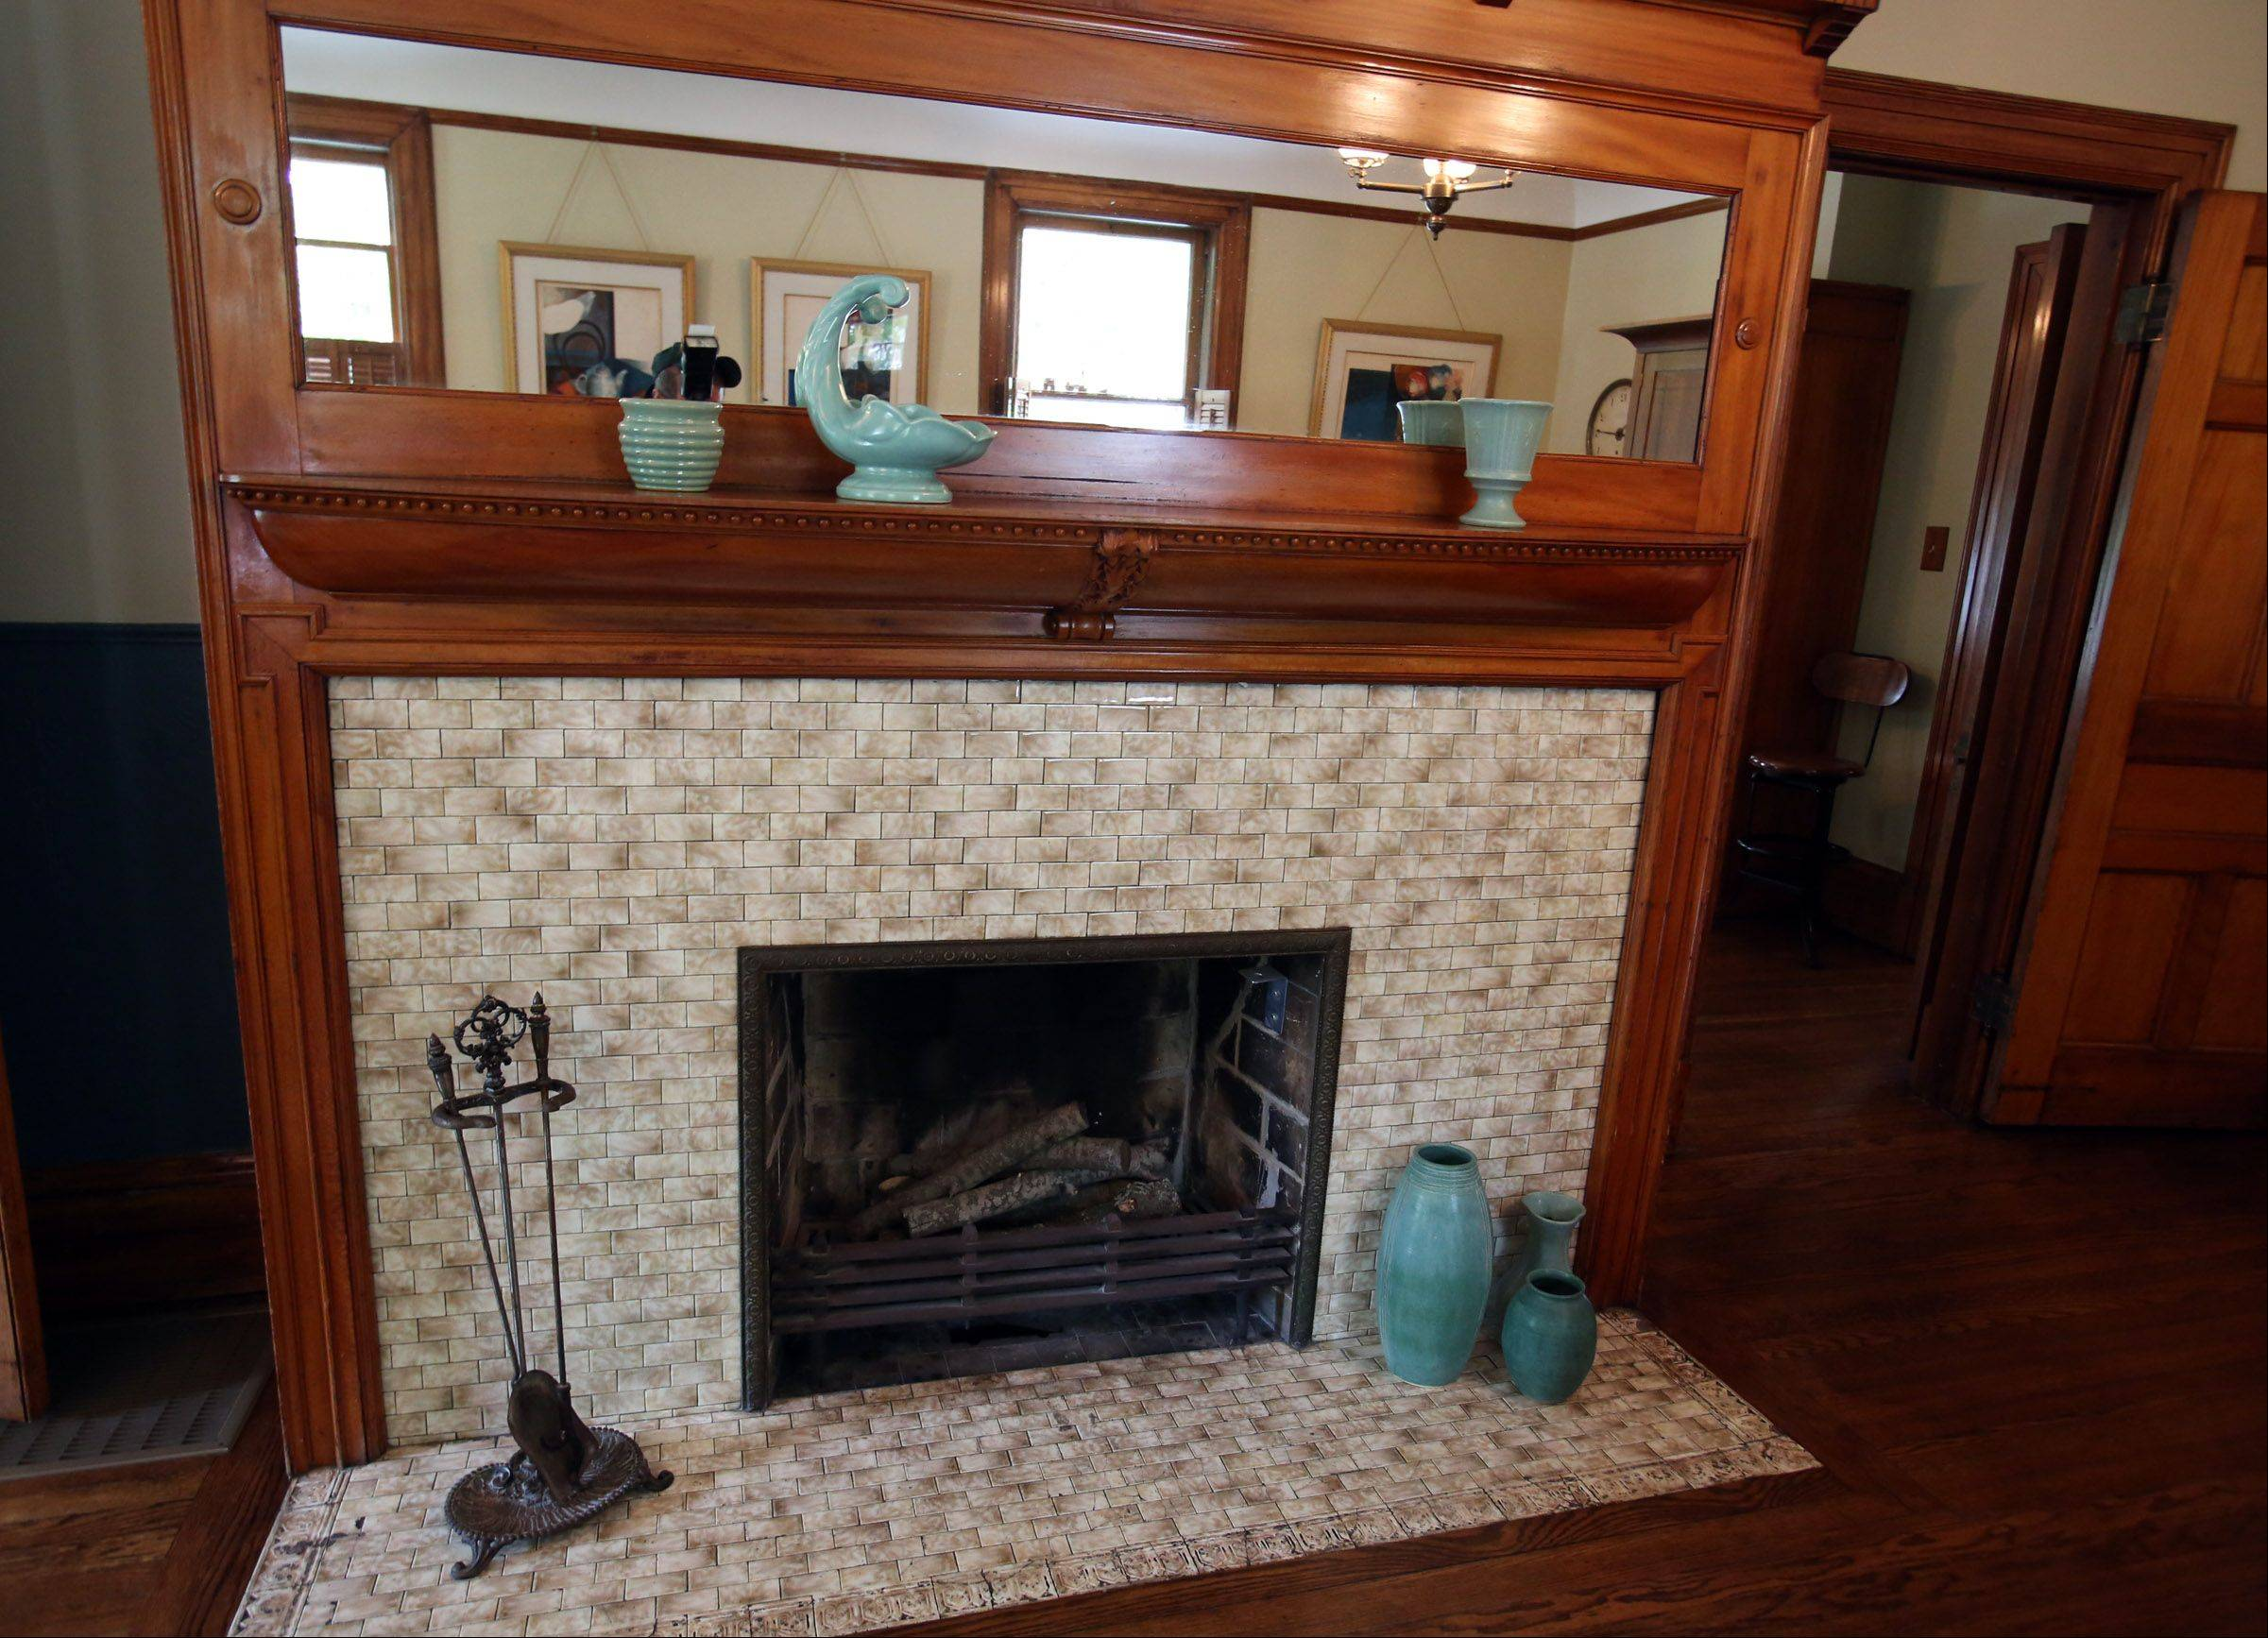 The living room fireplace in Laura and Michael Thompson's Oak Park home shows the skill of 19th century carpenter Abraham Edmunds.